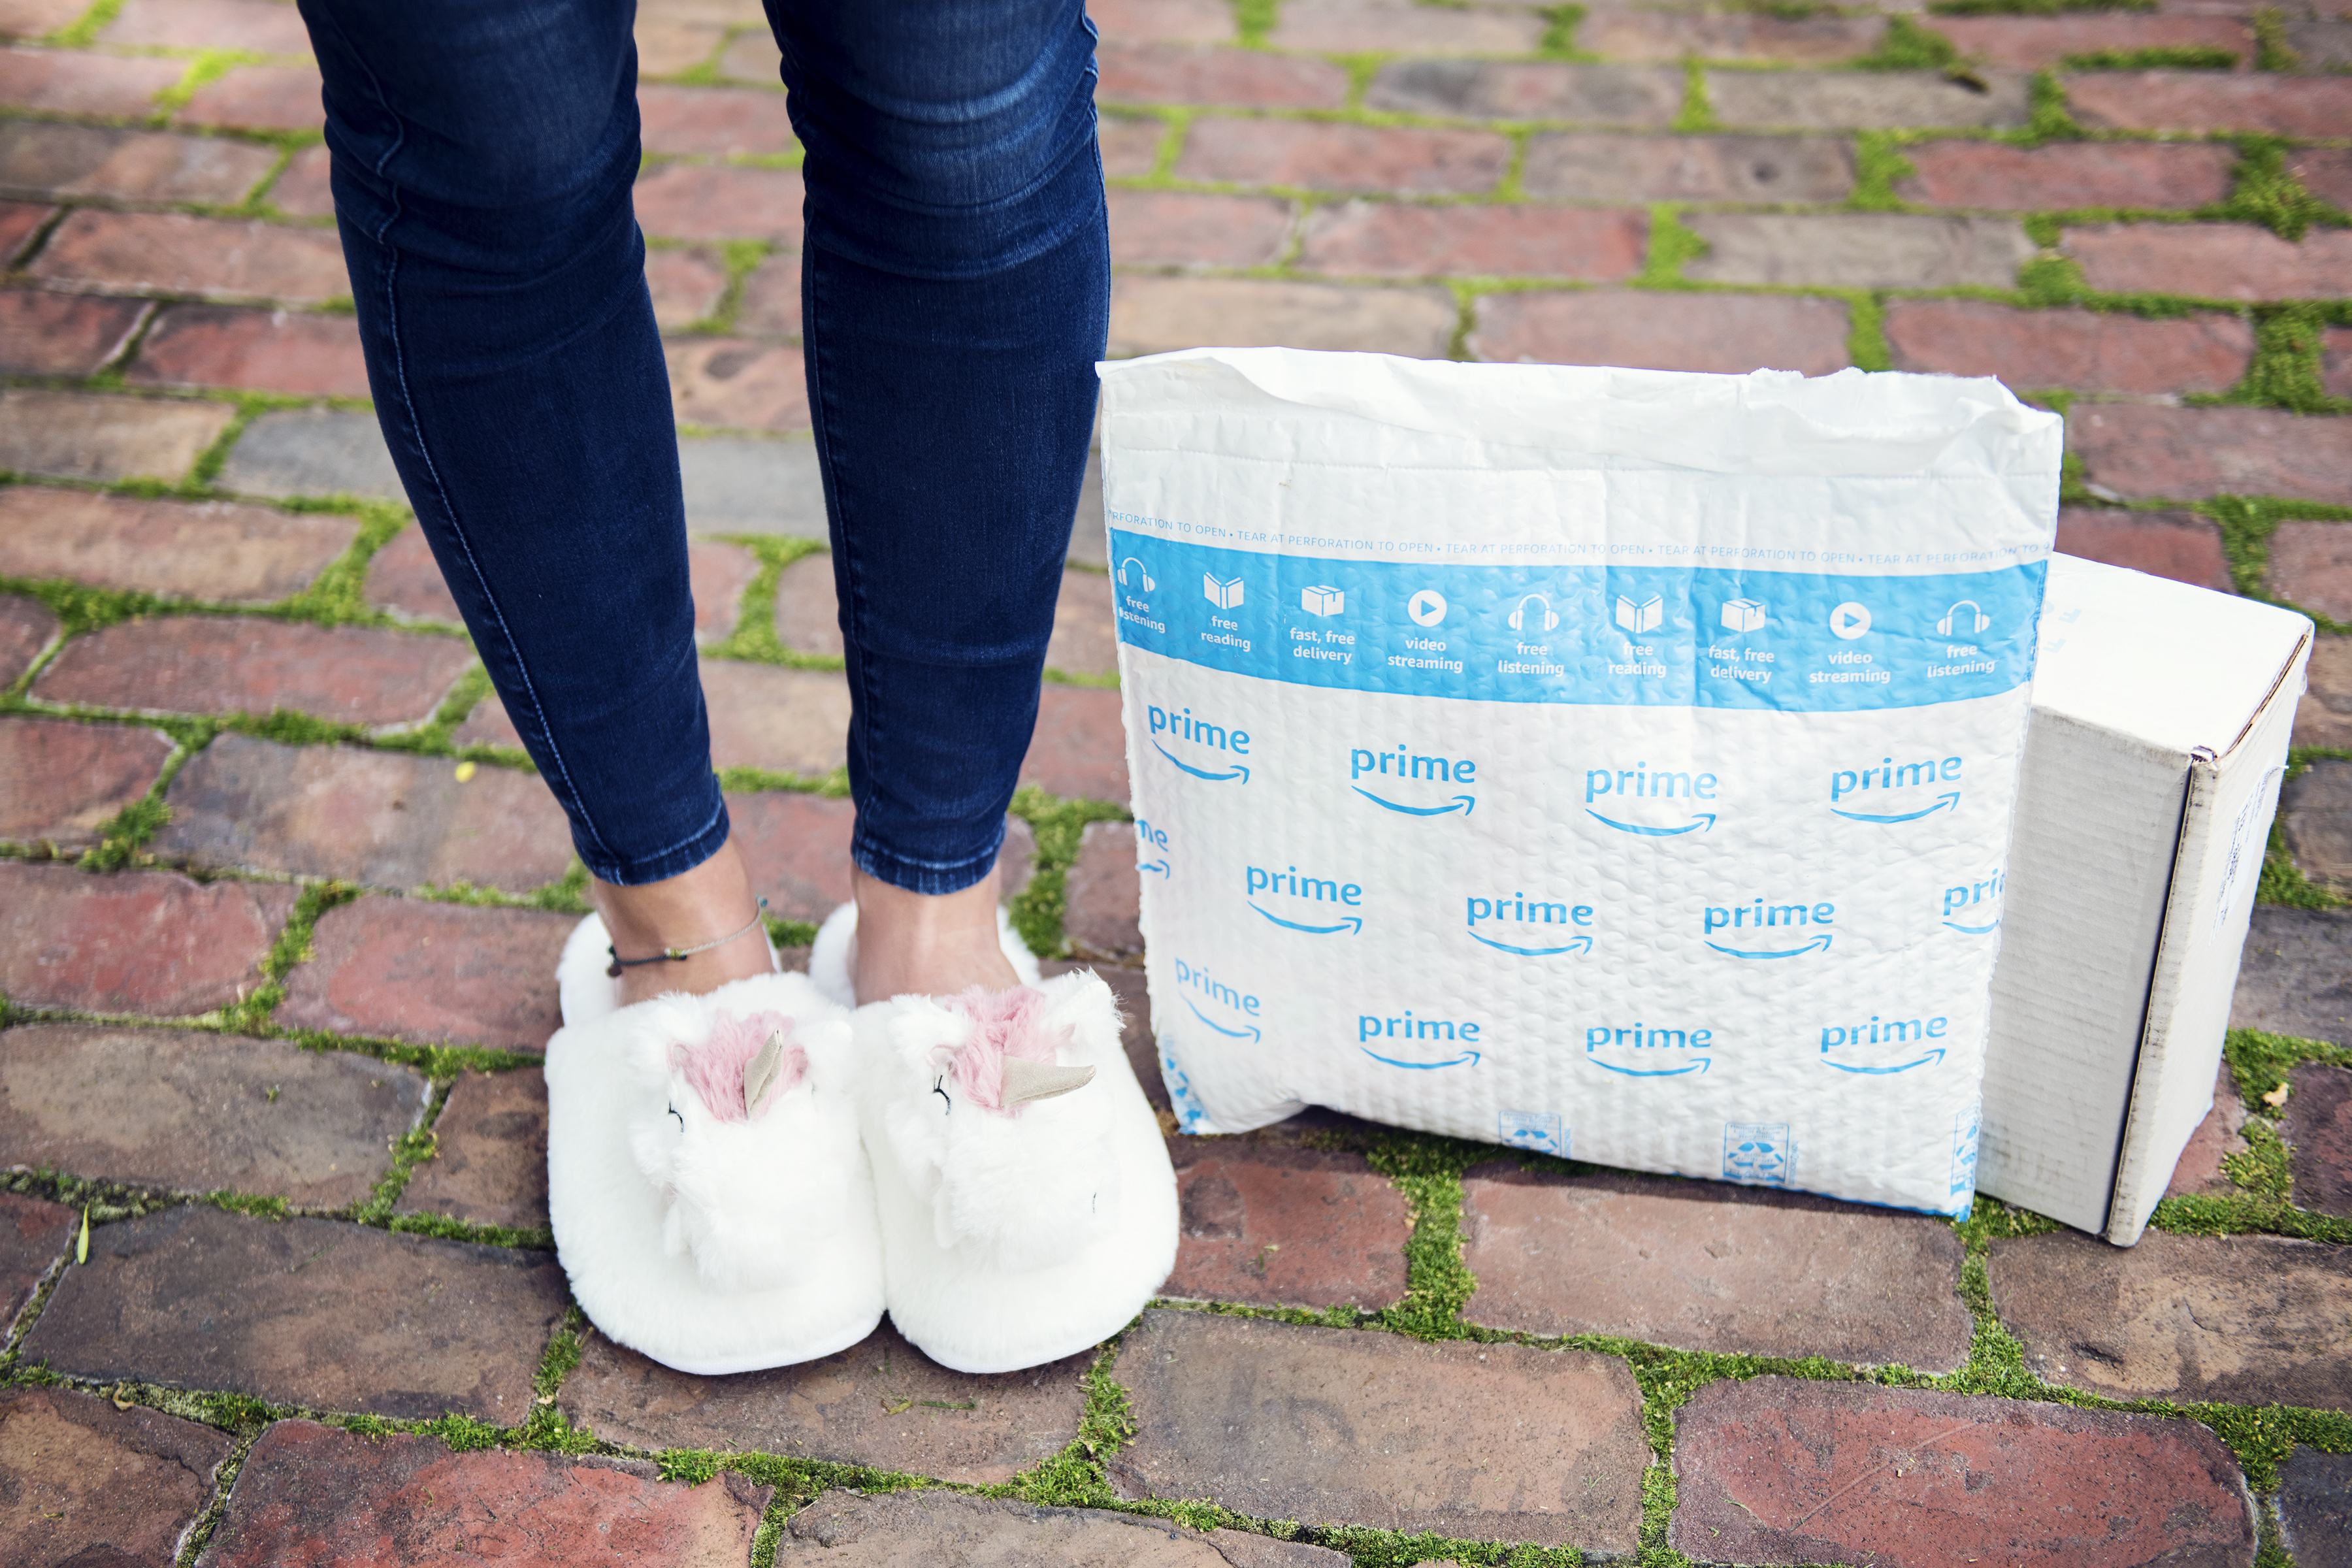 amazon prime day deals are coming! - Collin in unicorn slippers next to a prime package